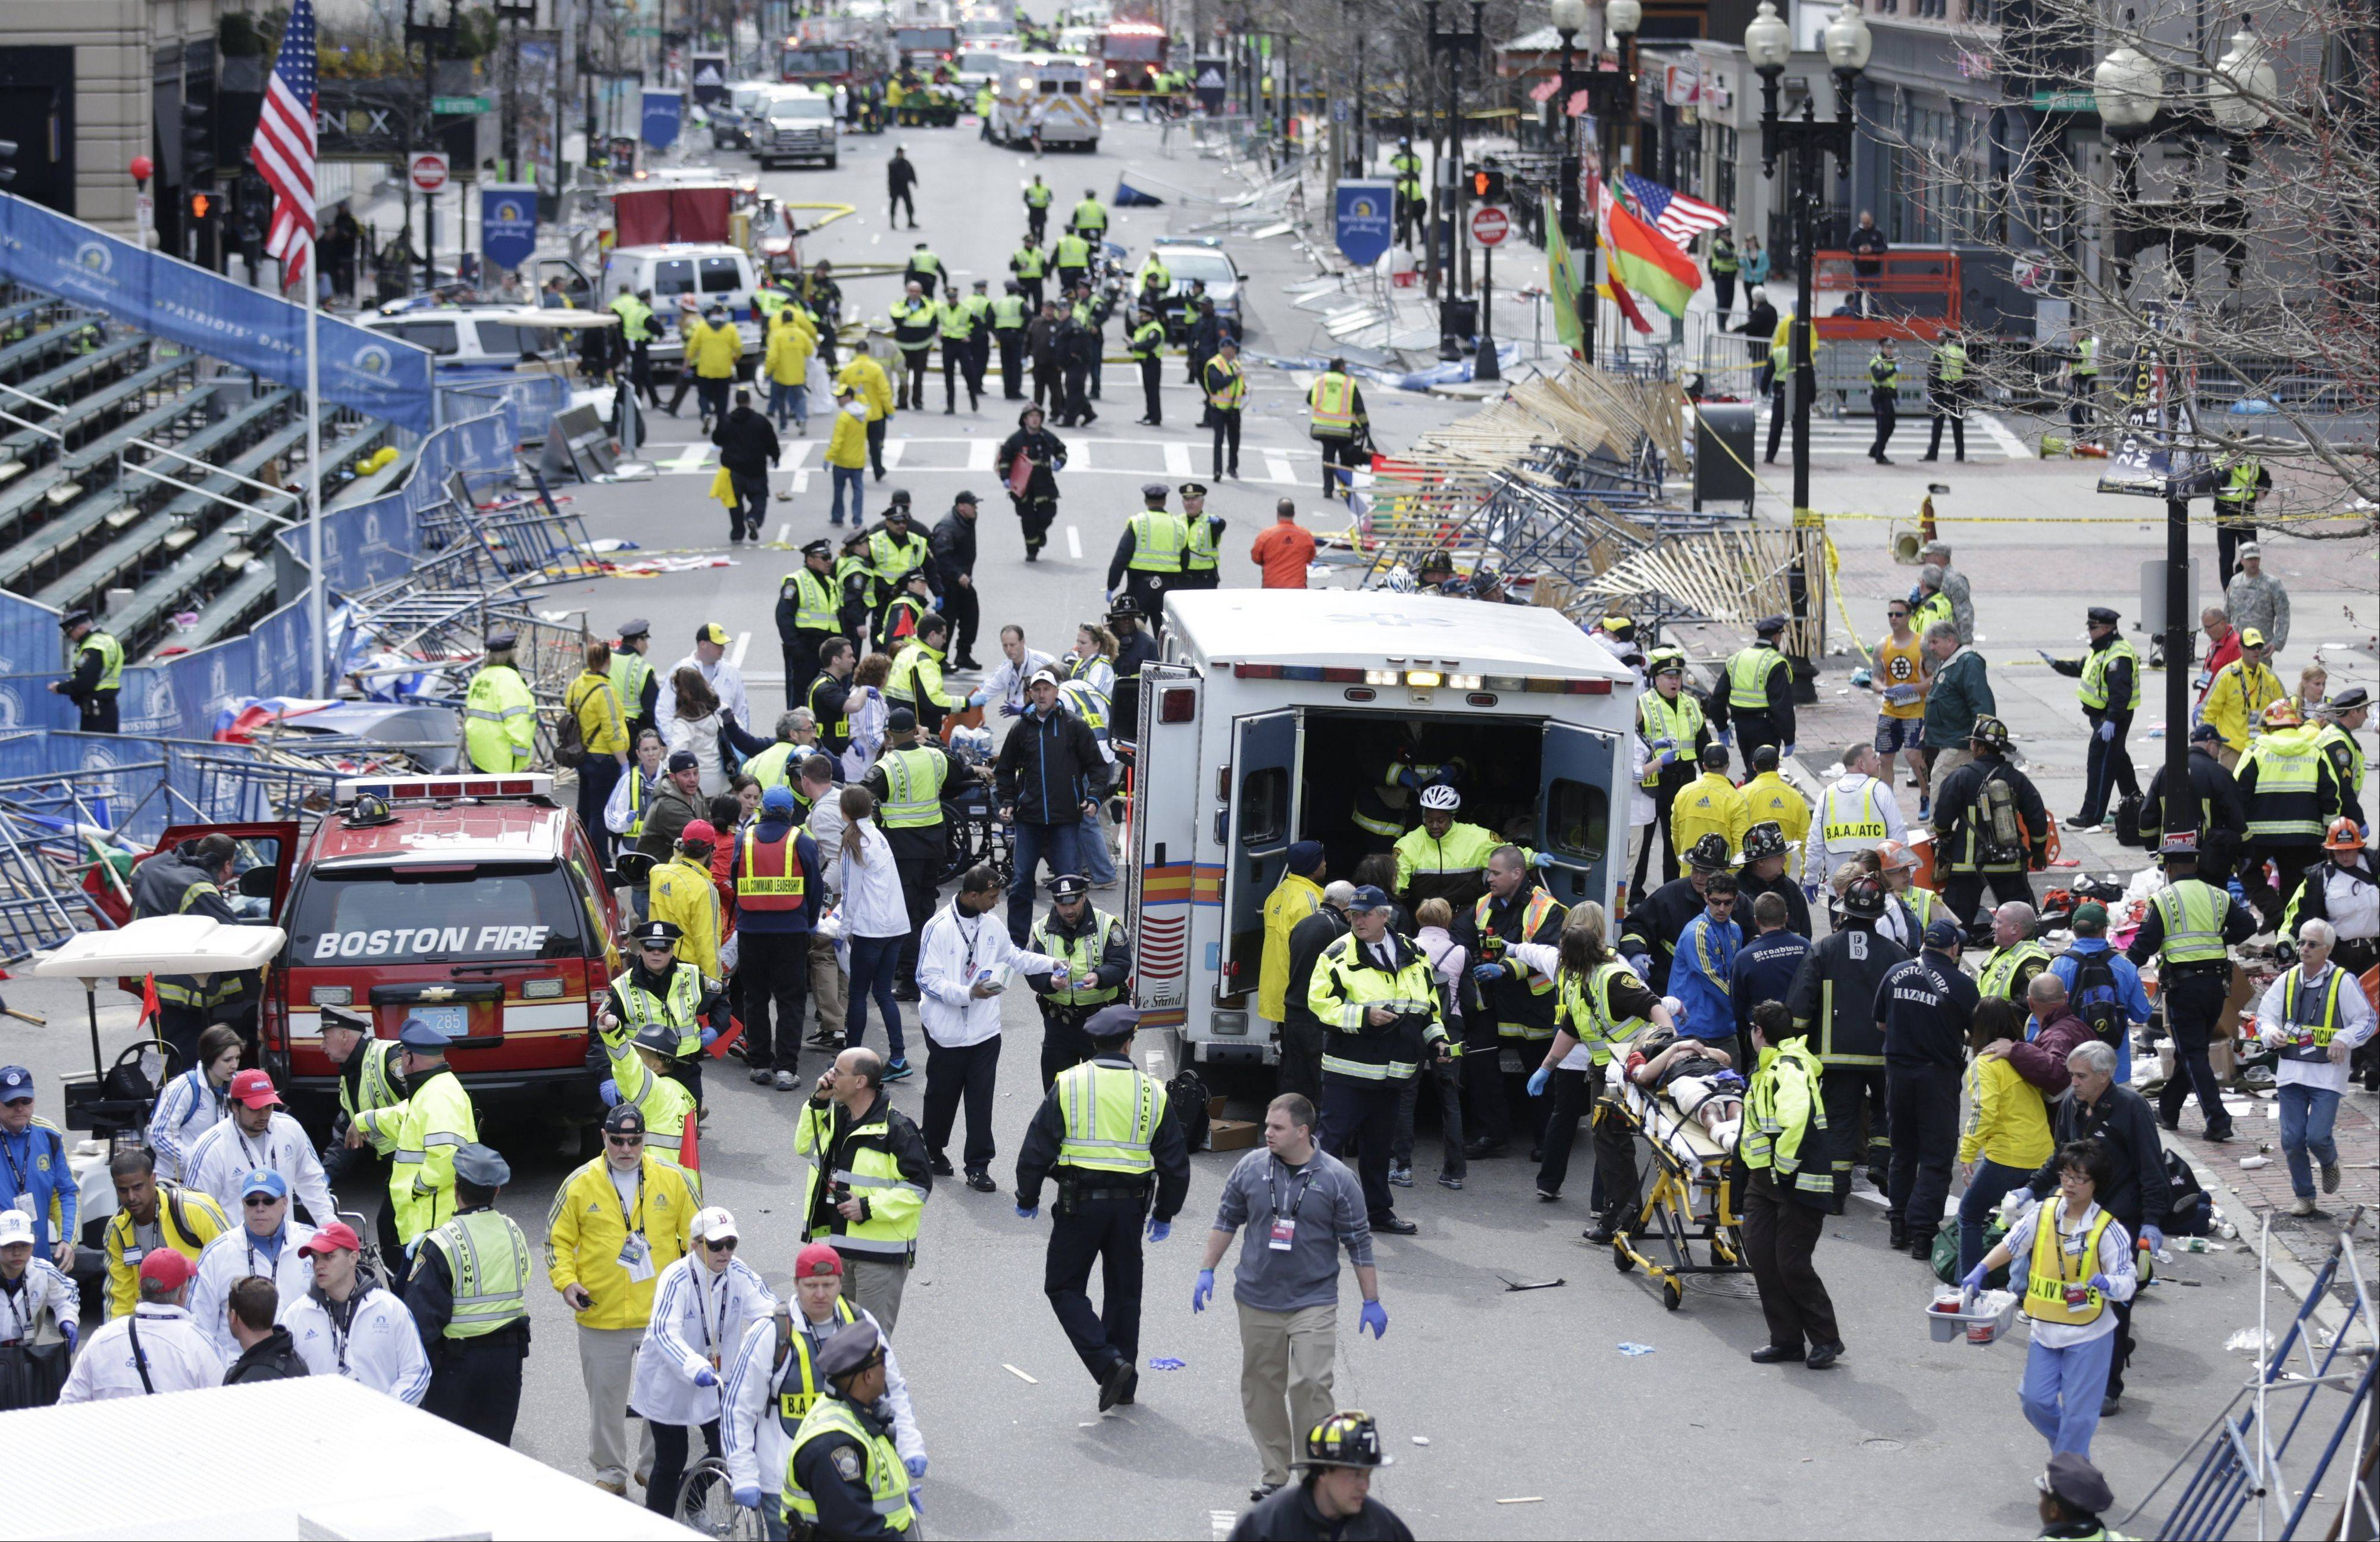 Medical workers aid injured people at the finish line of the Boston Marathon following Monday's explosion.